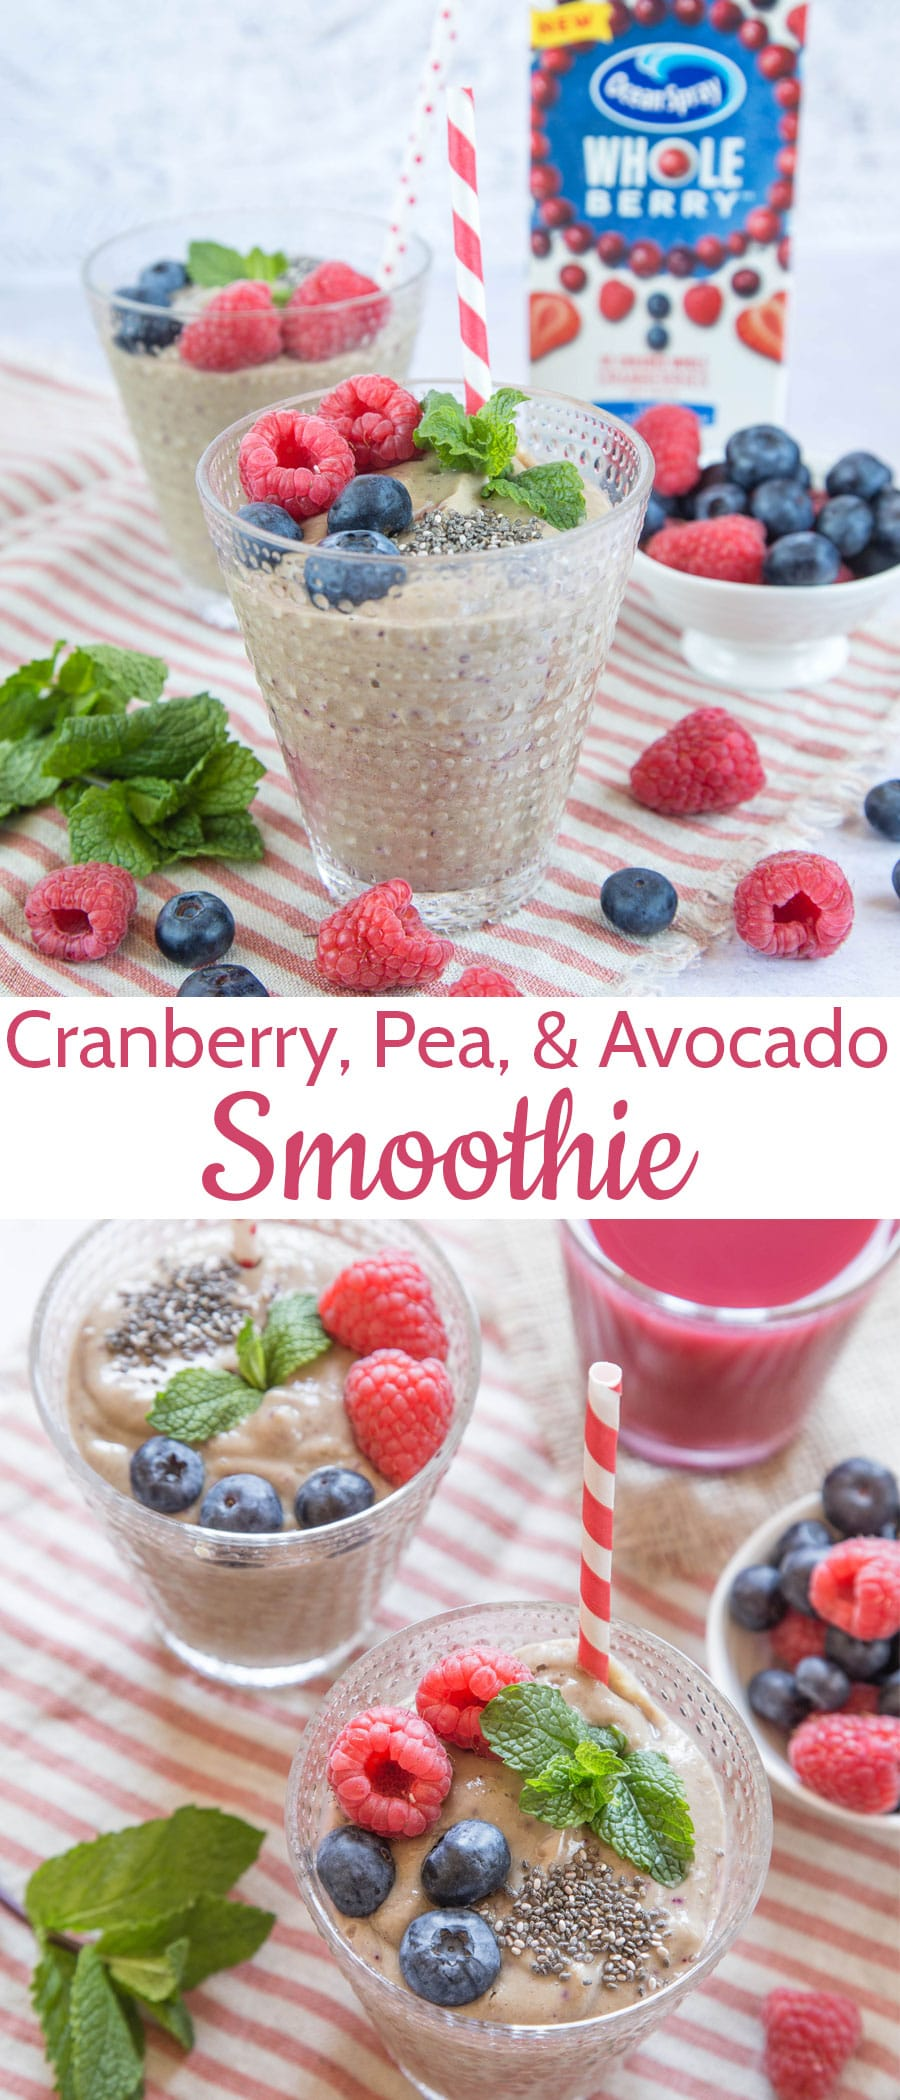 Two smoothies topped with fresh berries and mint with a text overlay